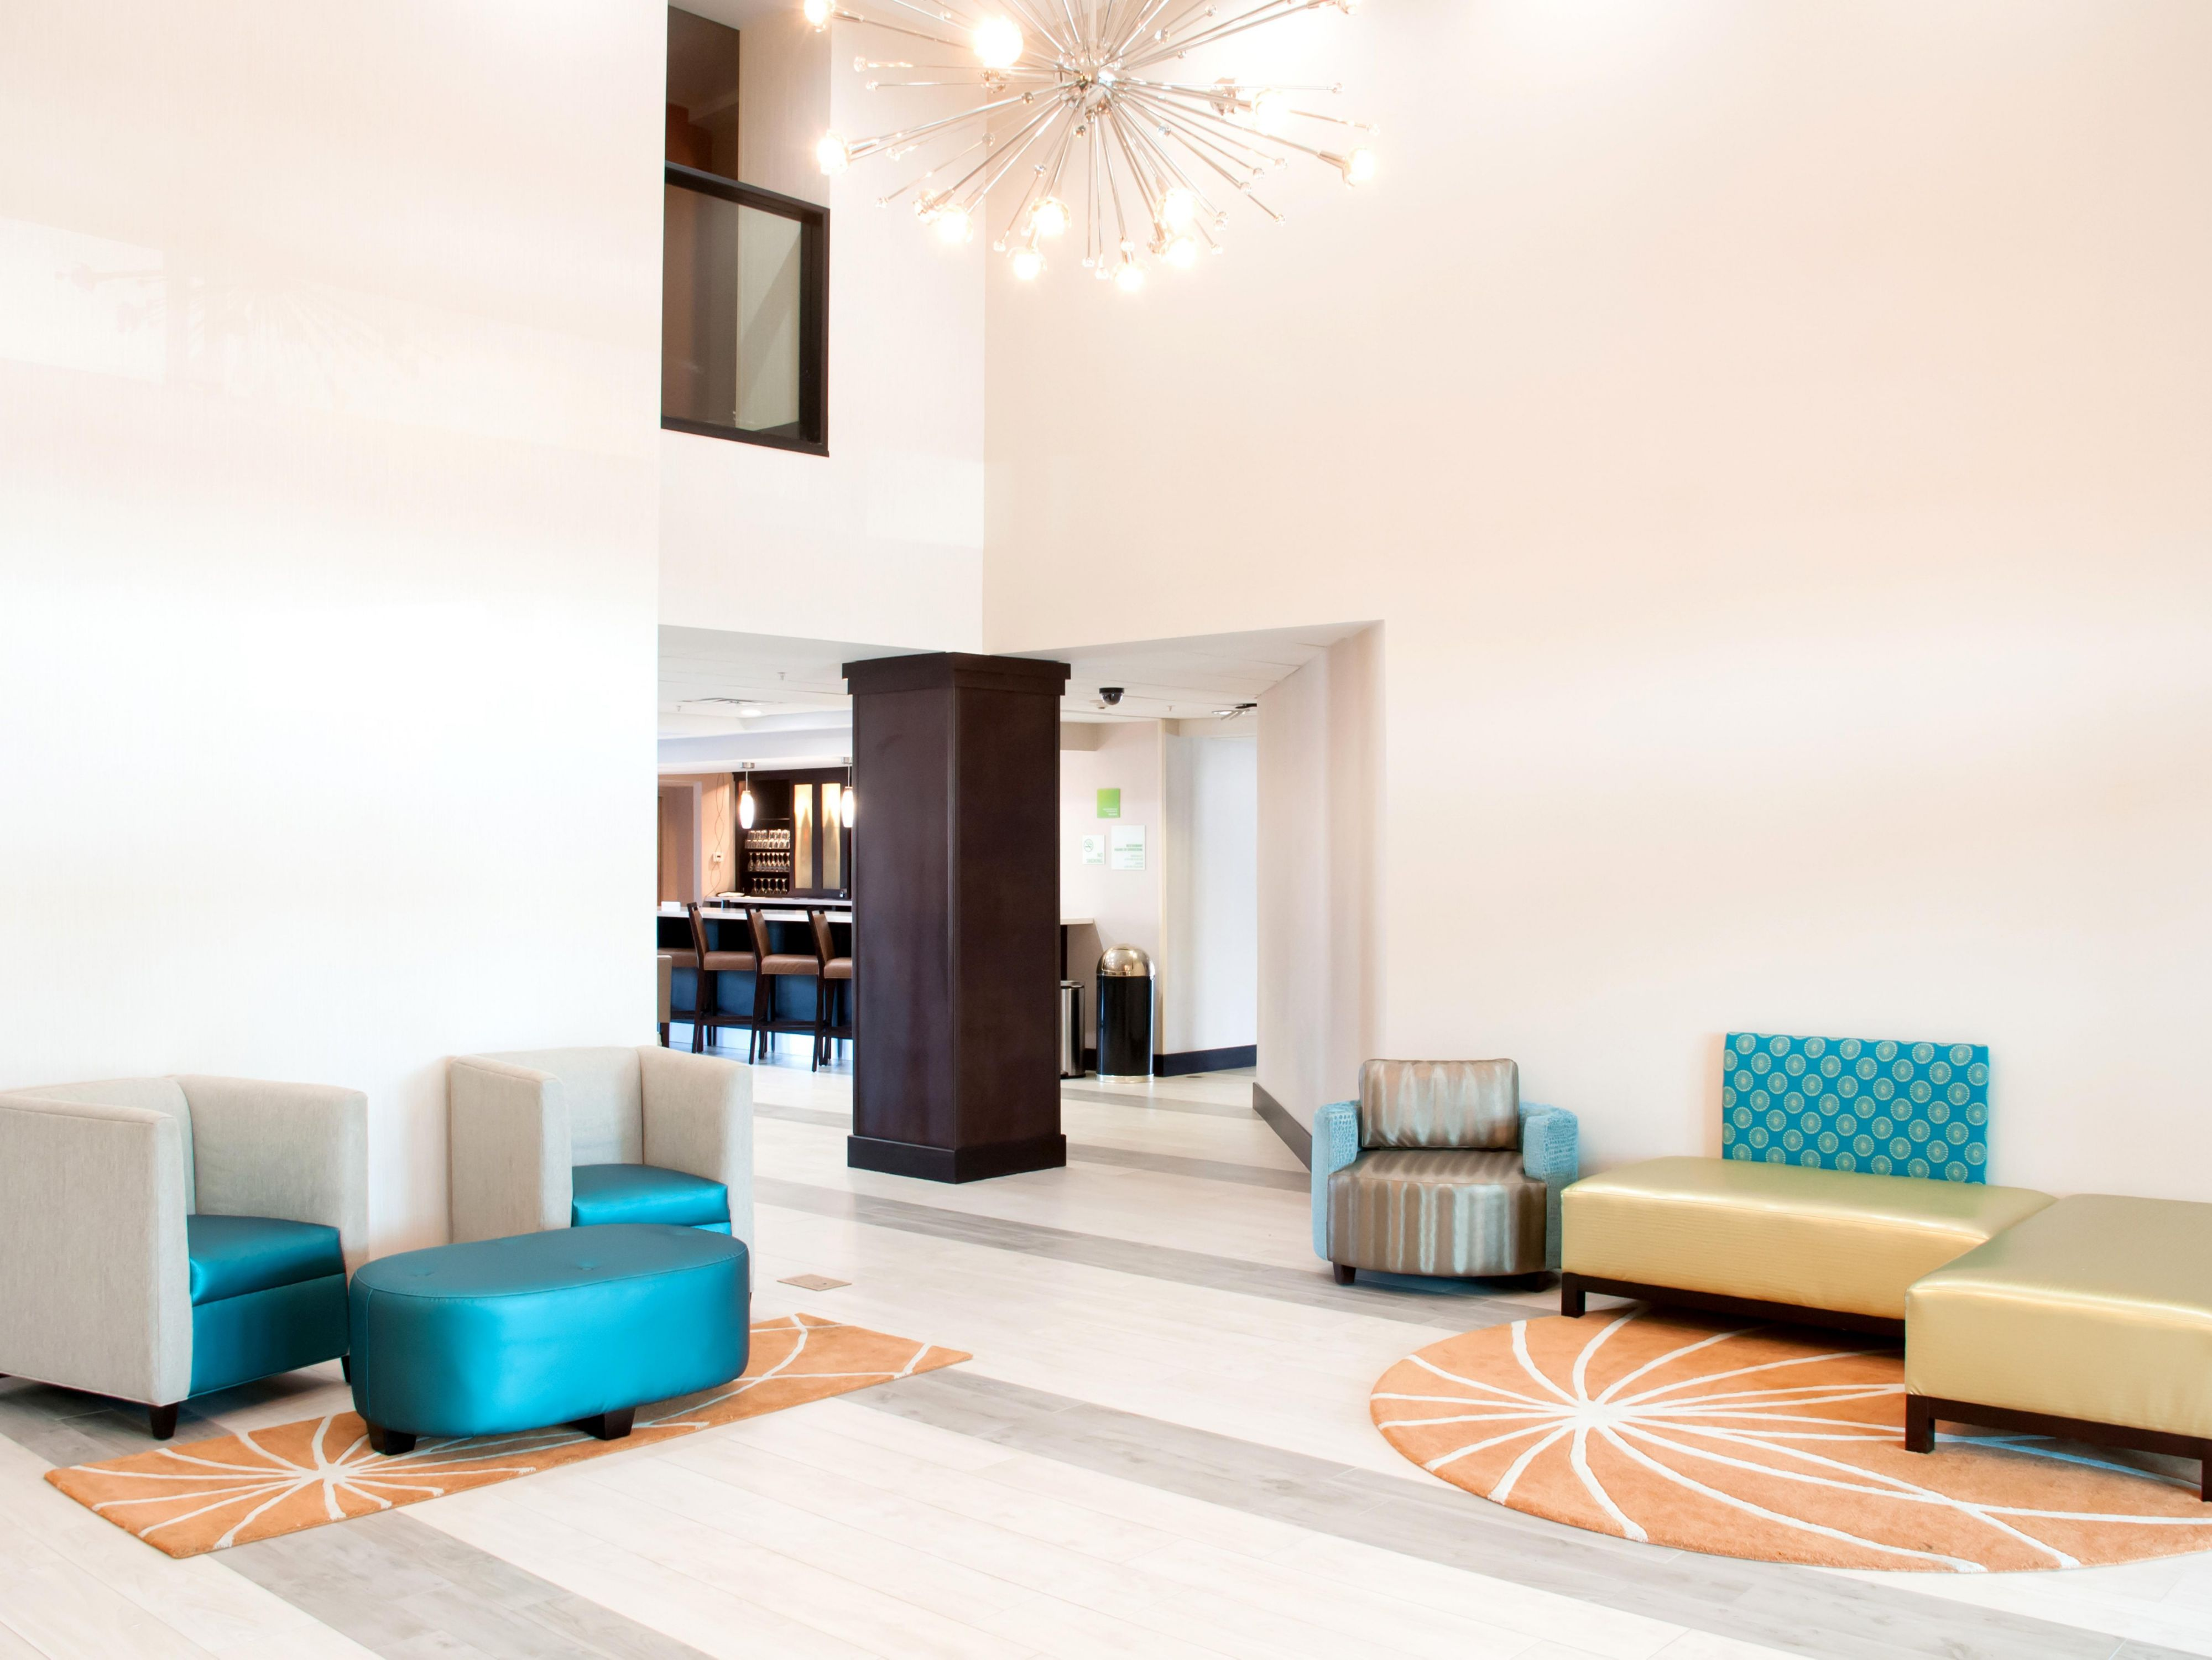 Welcome to the Newly Renovated Holiday Inn I-95 Savannah